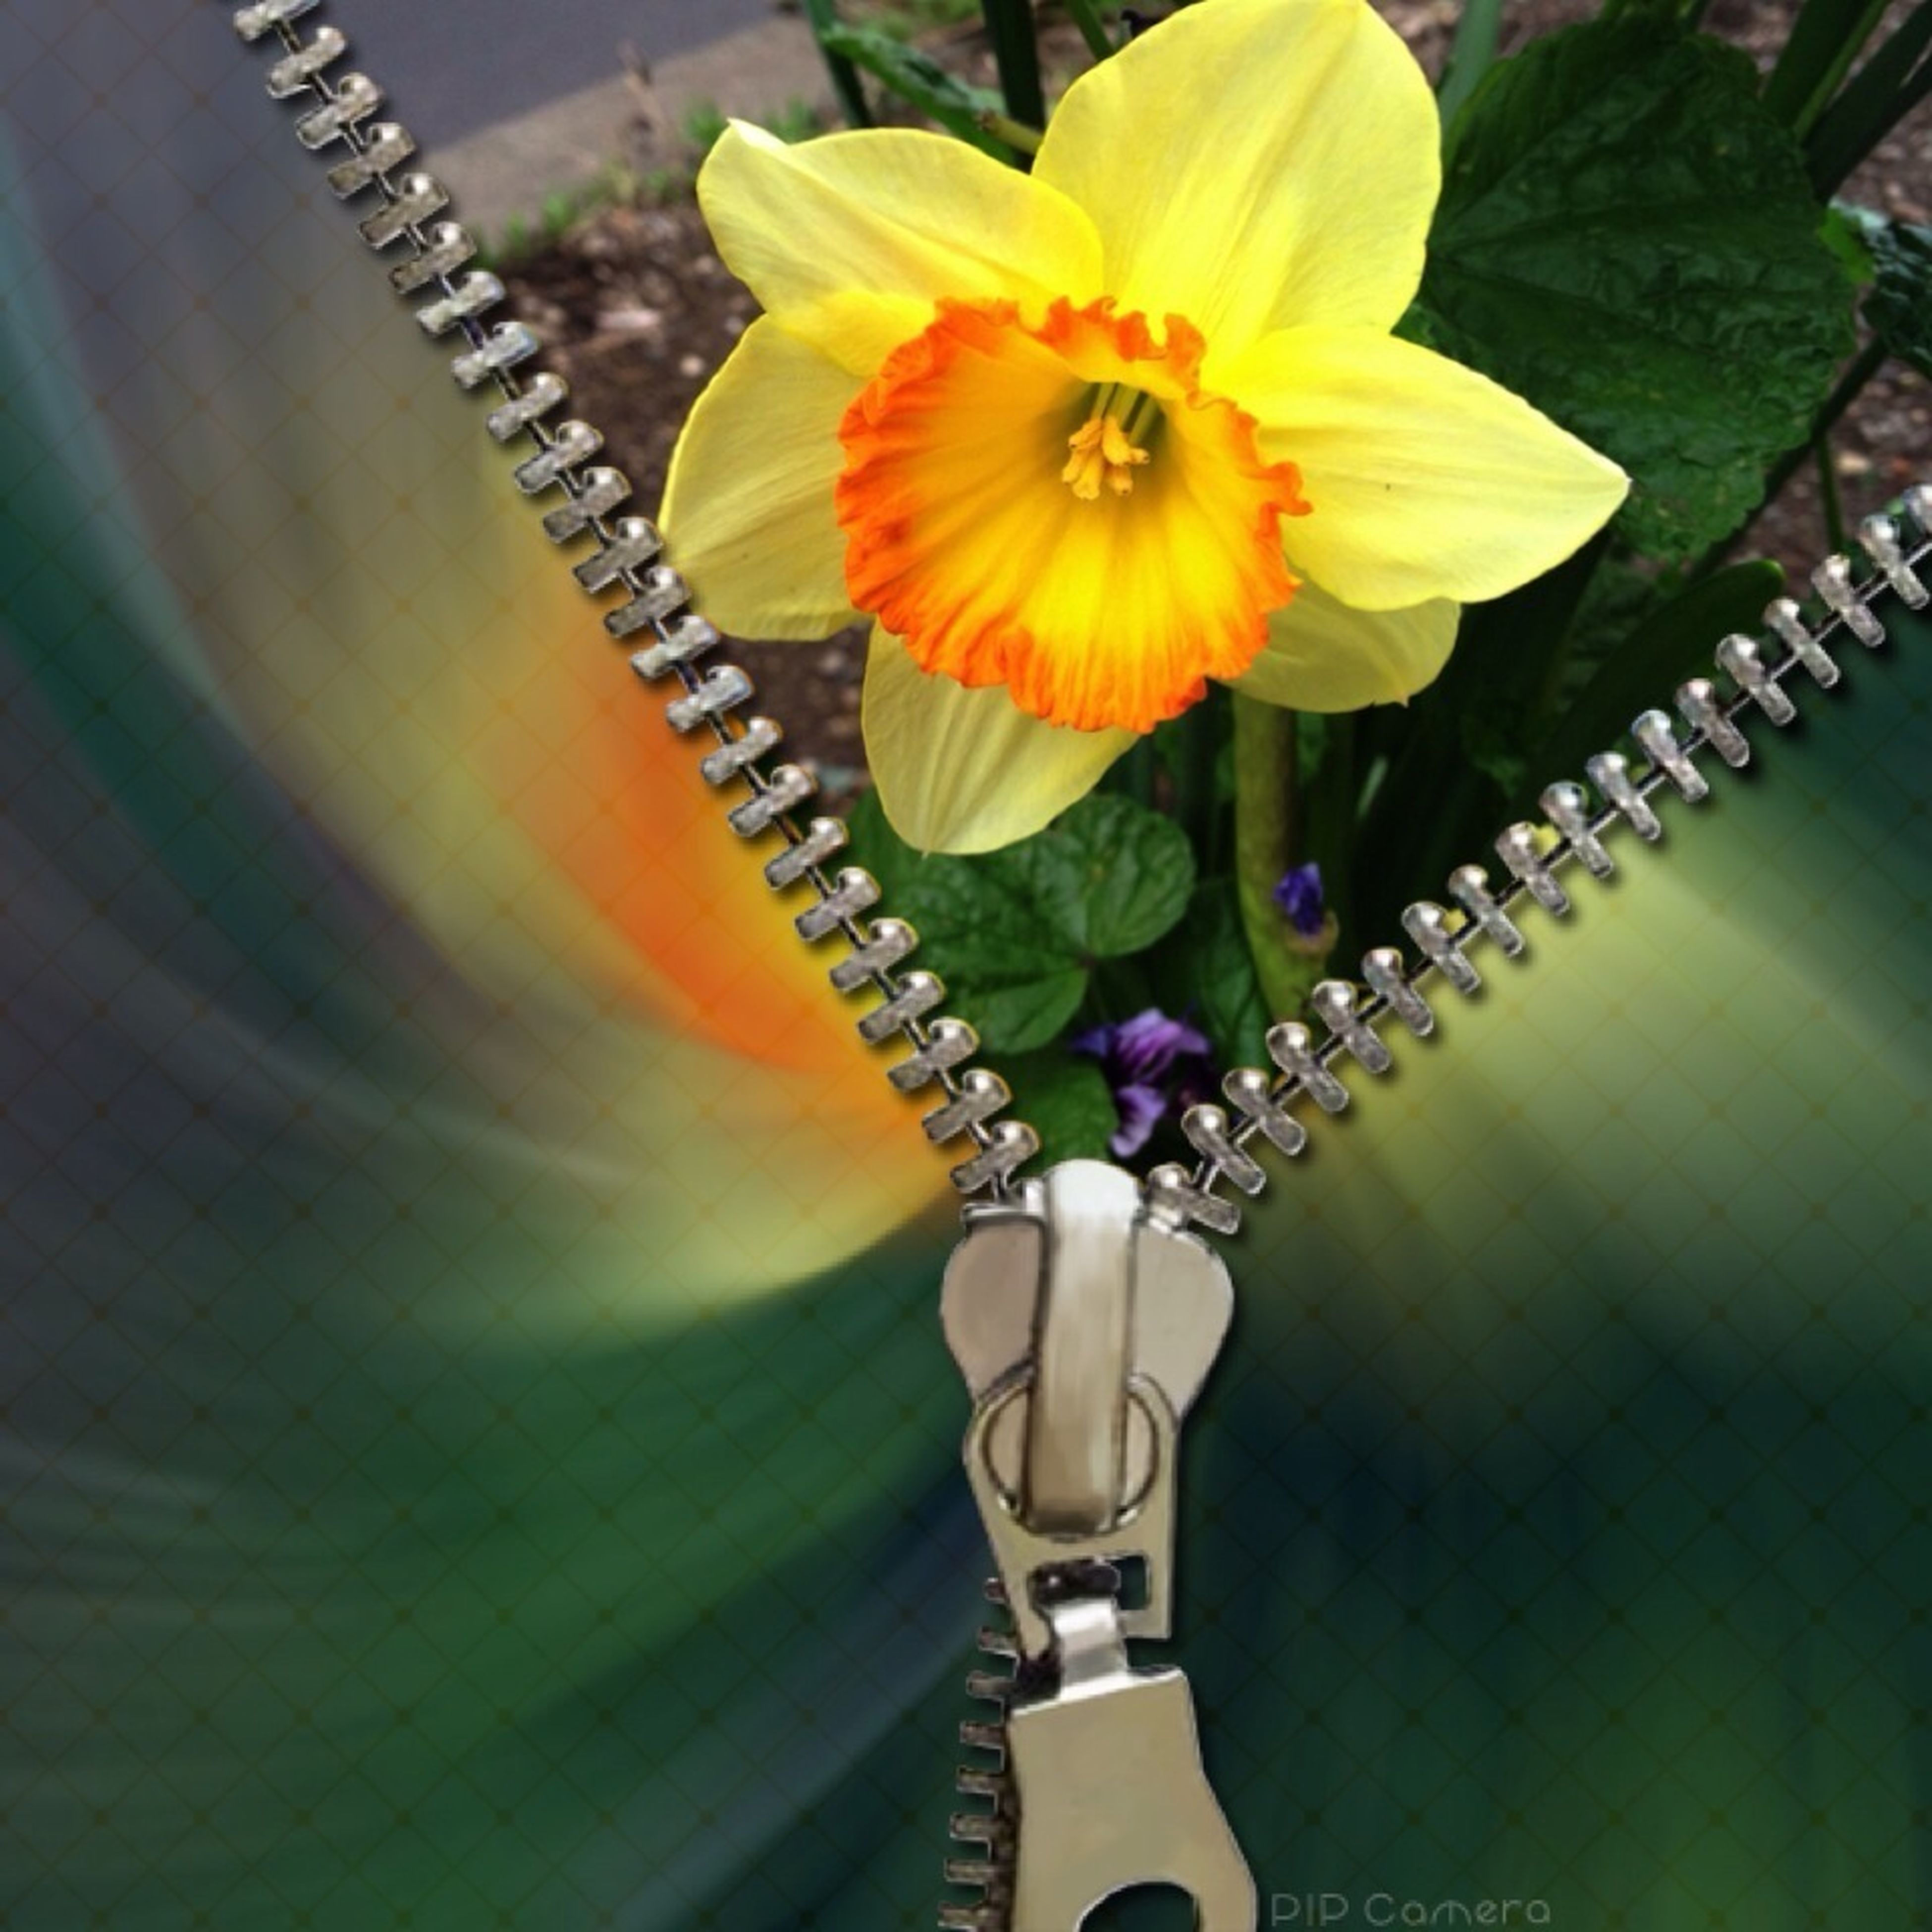 flower, indoors, fragility, decoration, petal, hanging, yellow, close-up, flower head, freshness, vase, multi colored, no people, lighting equipment, focus on foreground, home interior, nature, high angle view, decor, variation